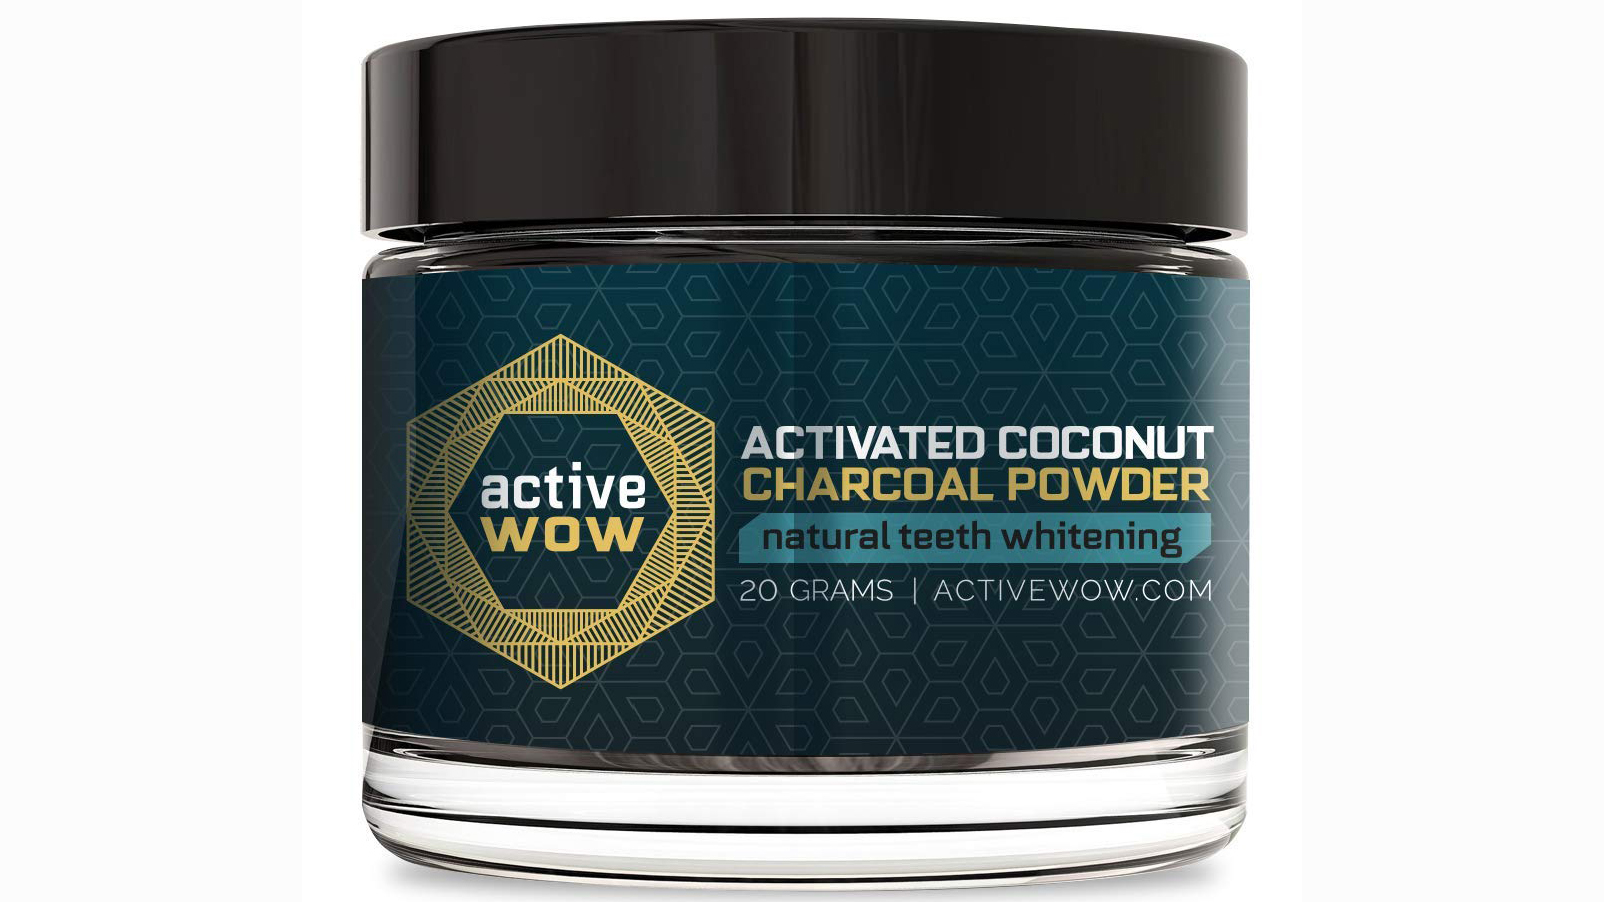 This Charcoal Powder Drastically Whitens Teeth Without Any Chemicals